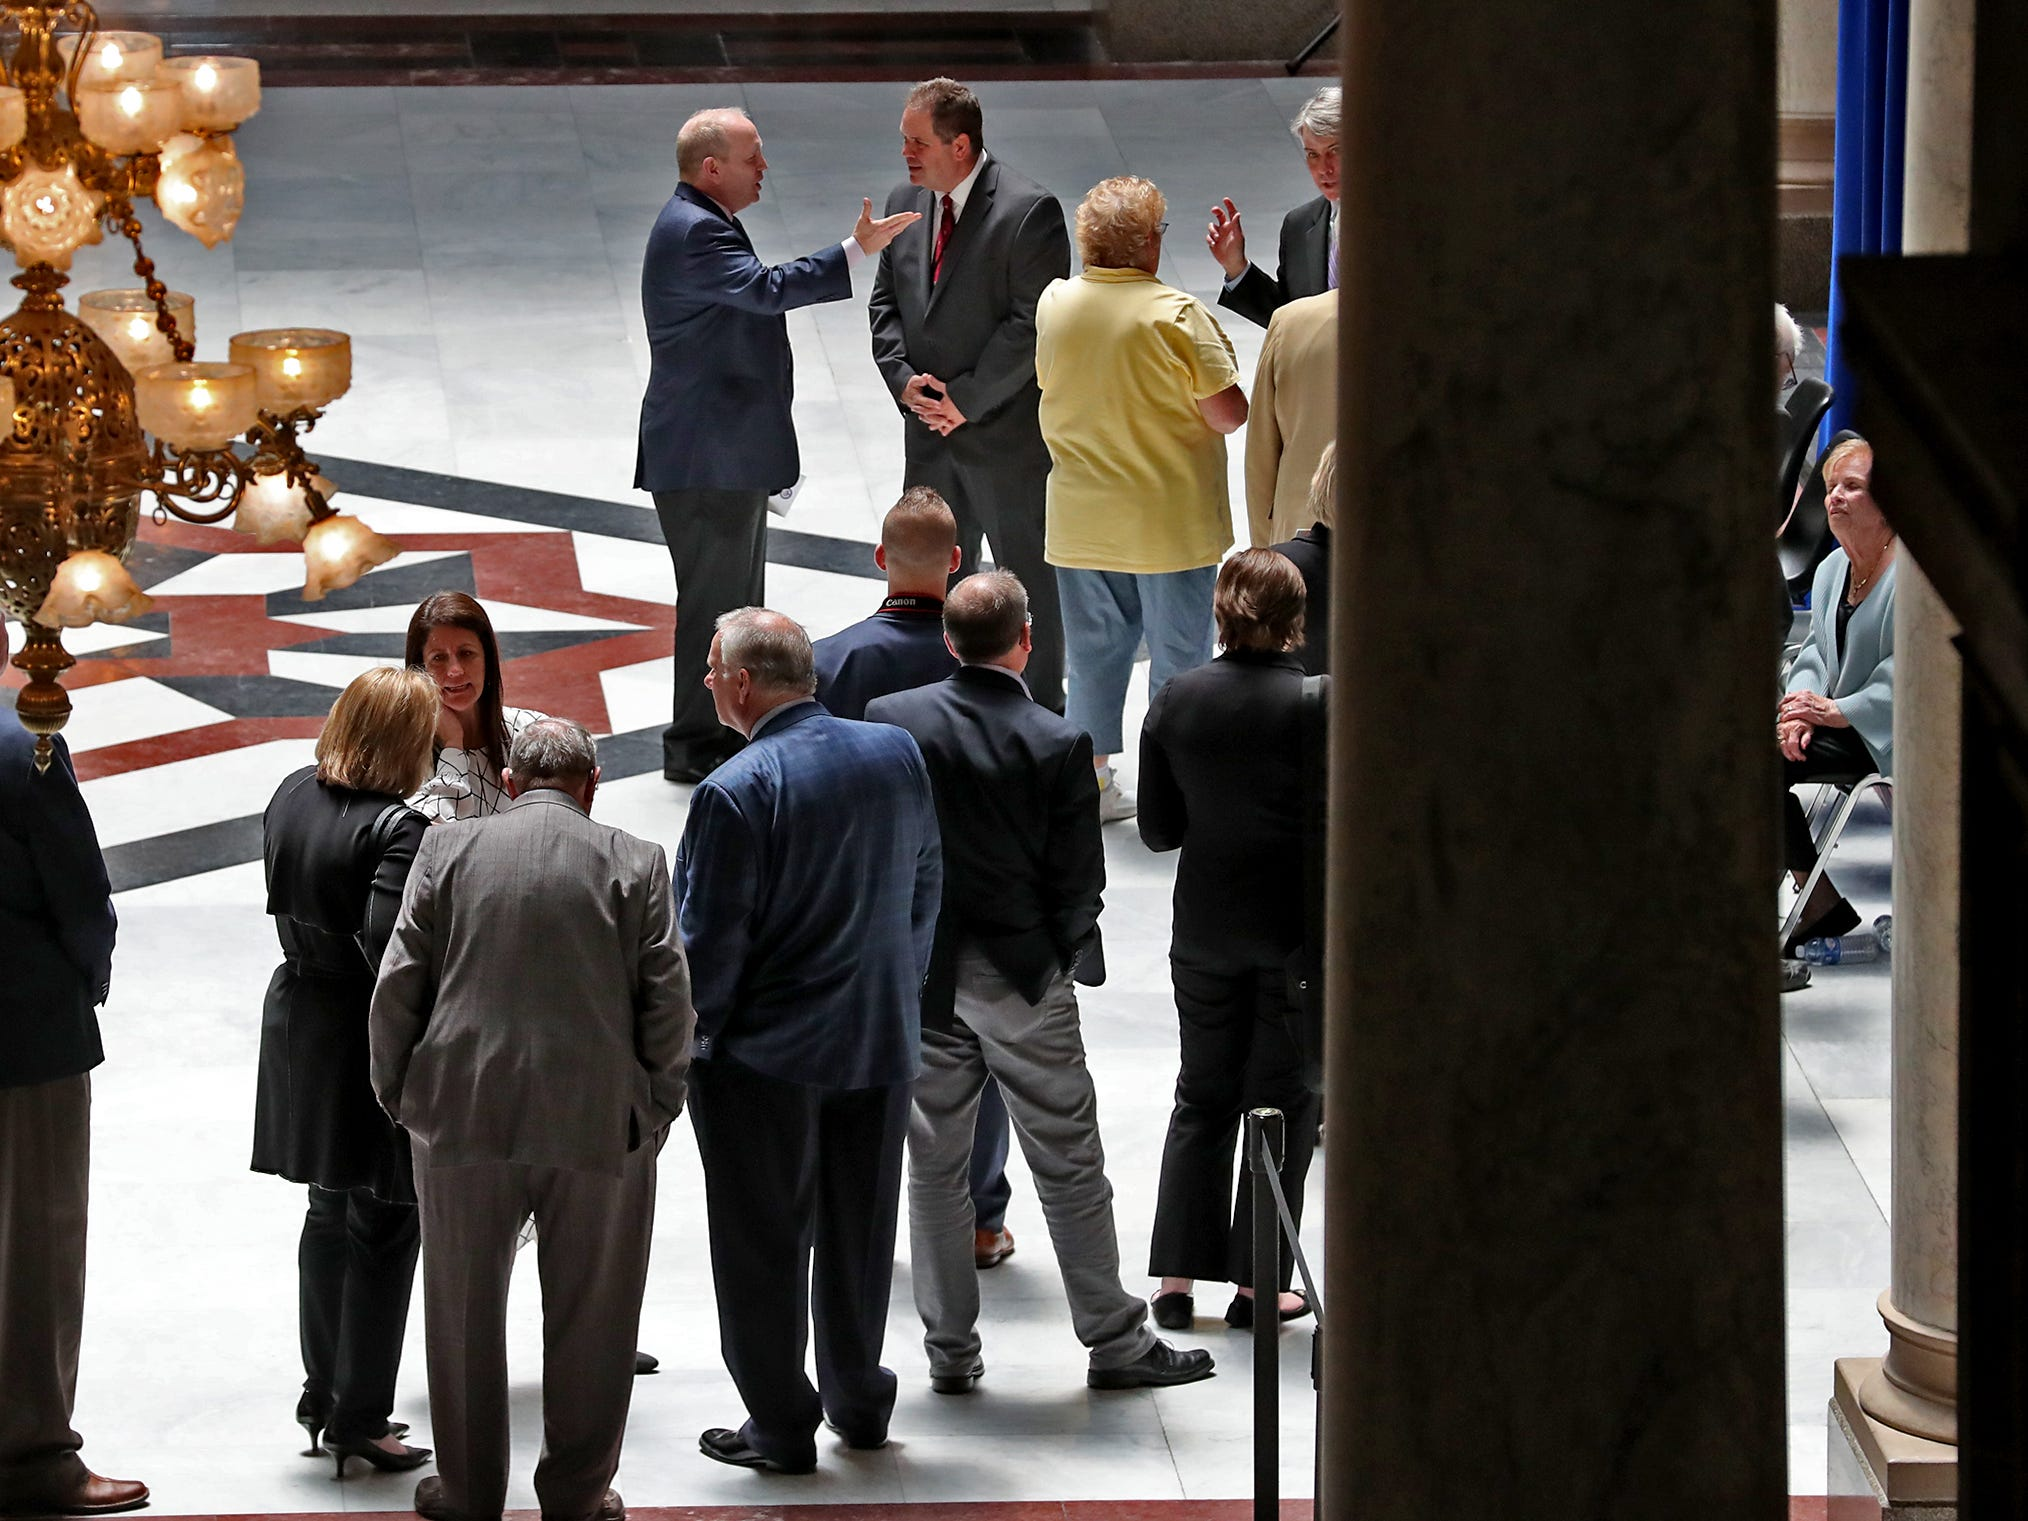 As Former Senator and Mayor Richard Lugar lies in state under the Statehouse rotunda, Tuesday, May 14, 2019, his family sees people paying their respects.